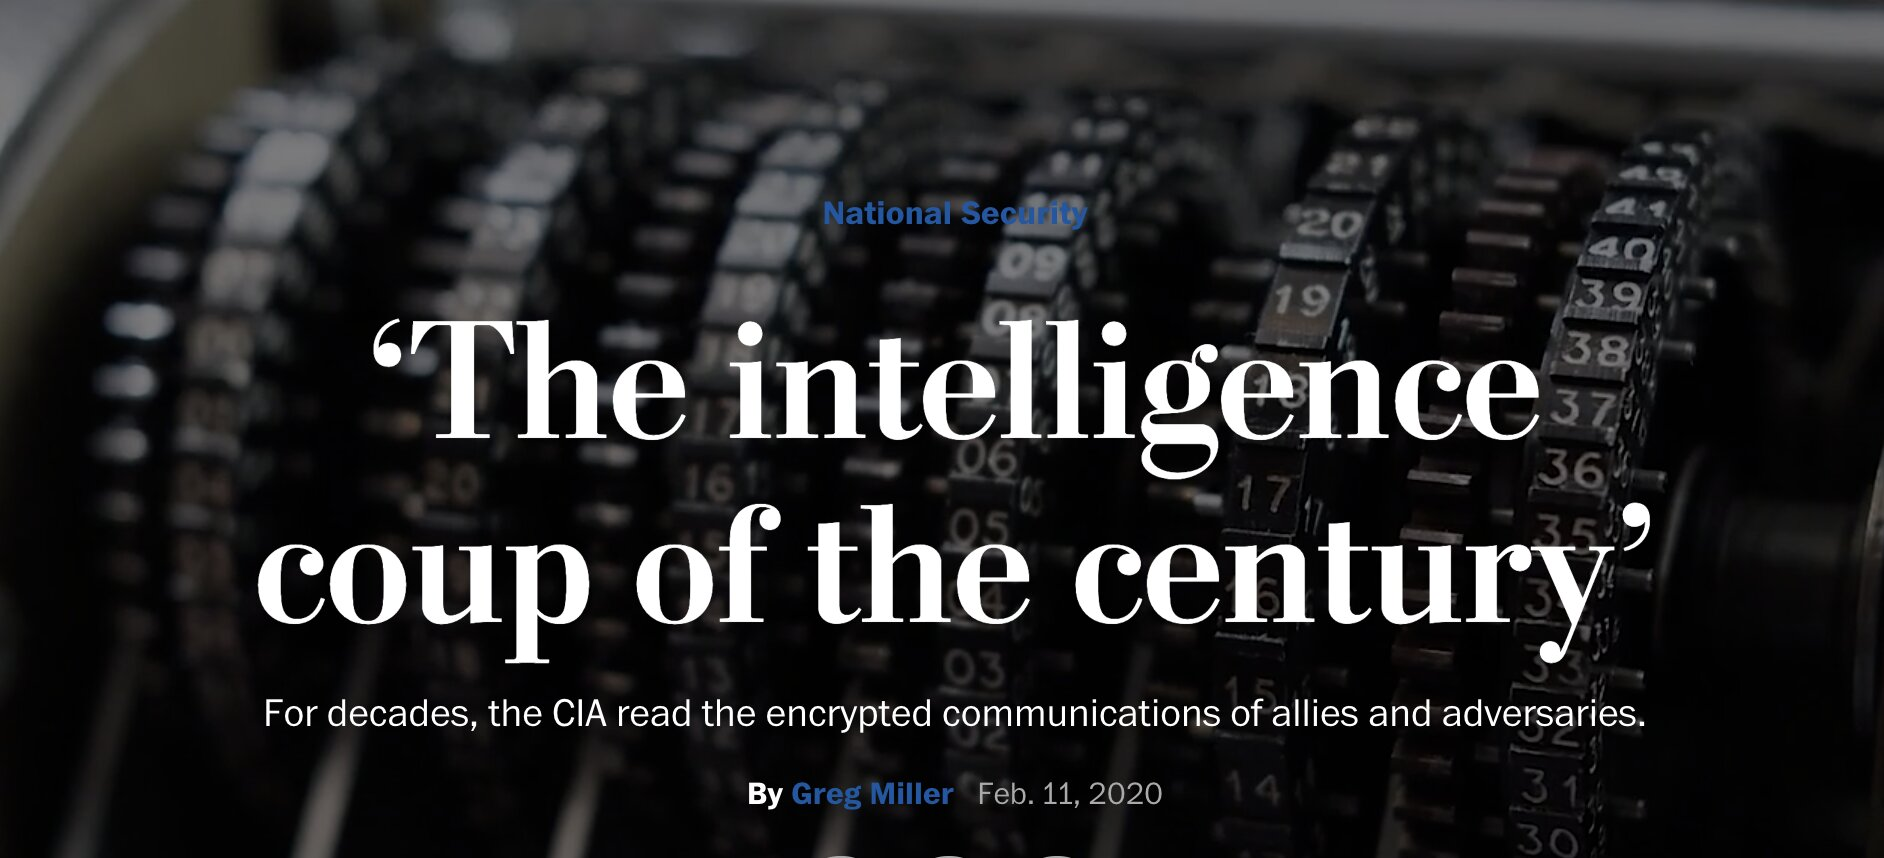 The intelligence coup of the century' – For decades, the CIA read the encrypted communications of allies and adversaries.